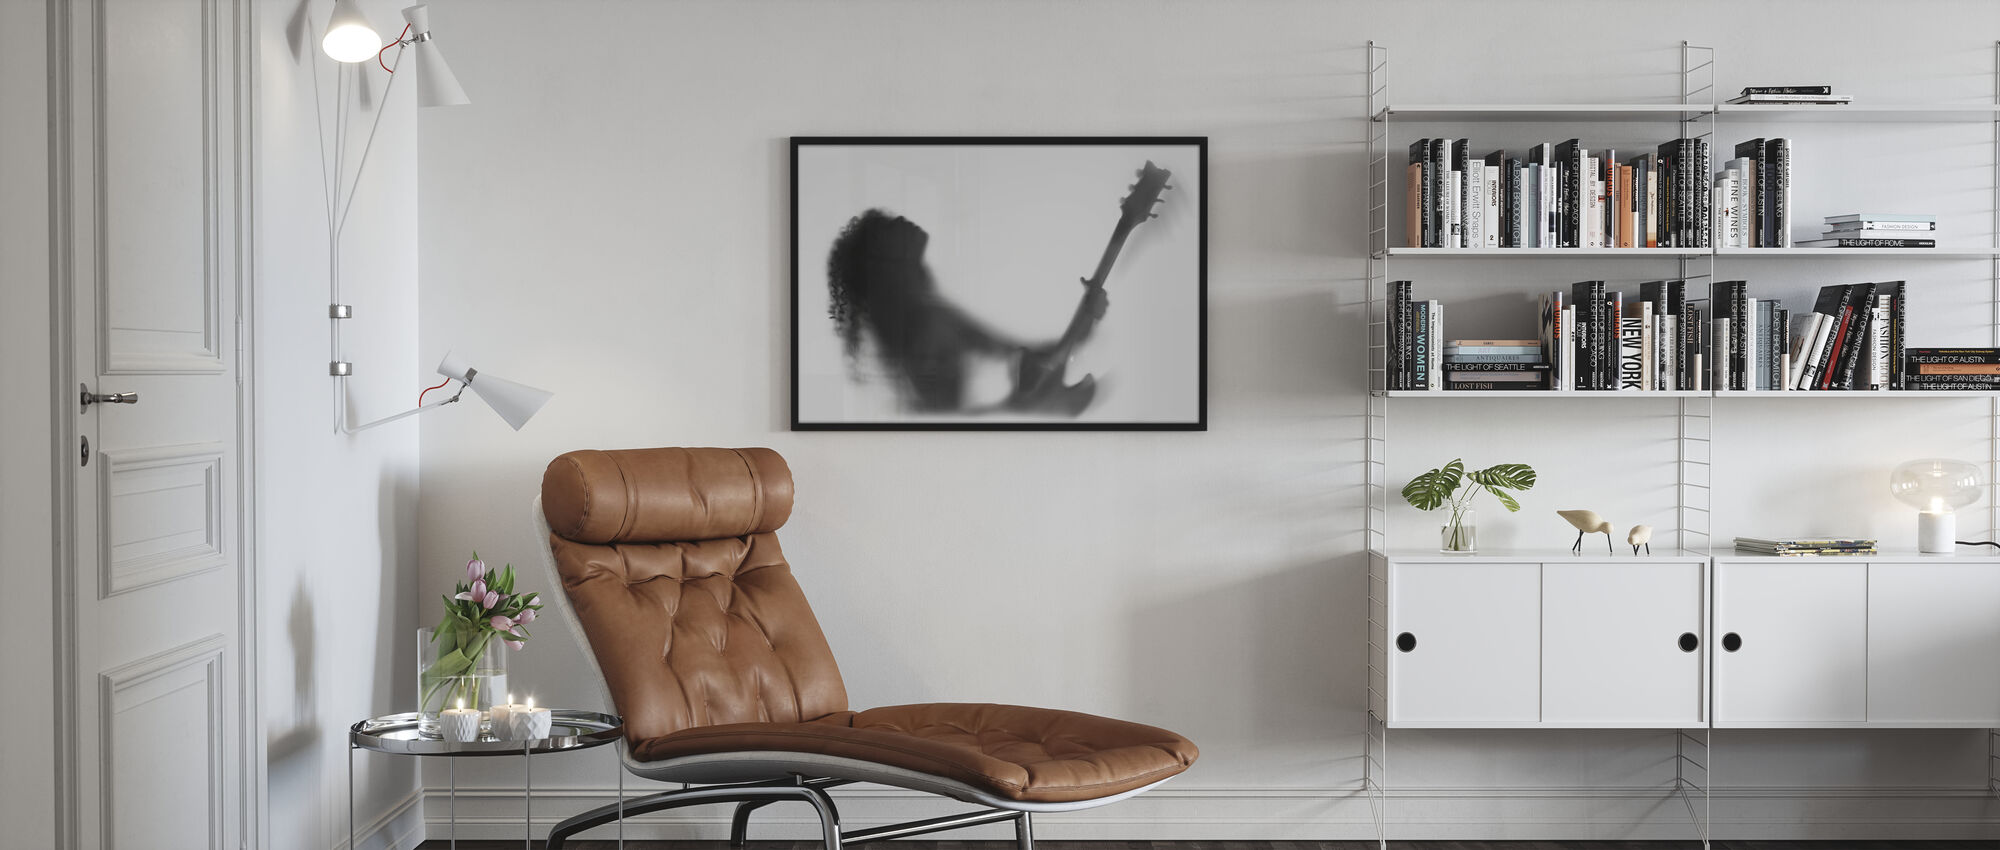 Guitar Solo - Poster - Living Room